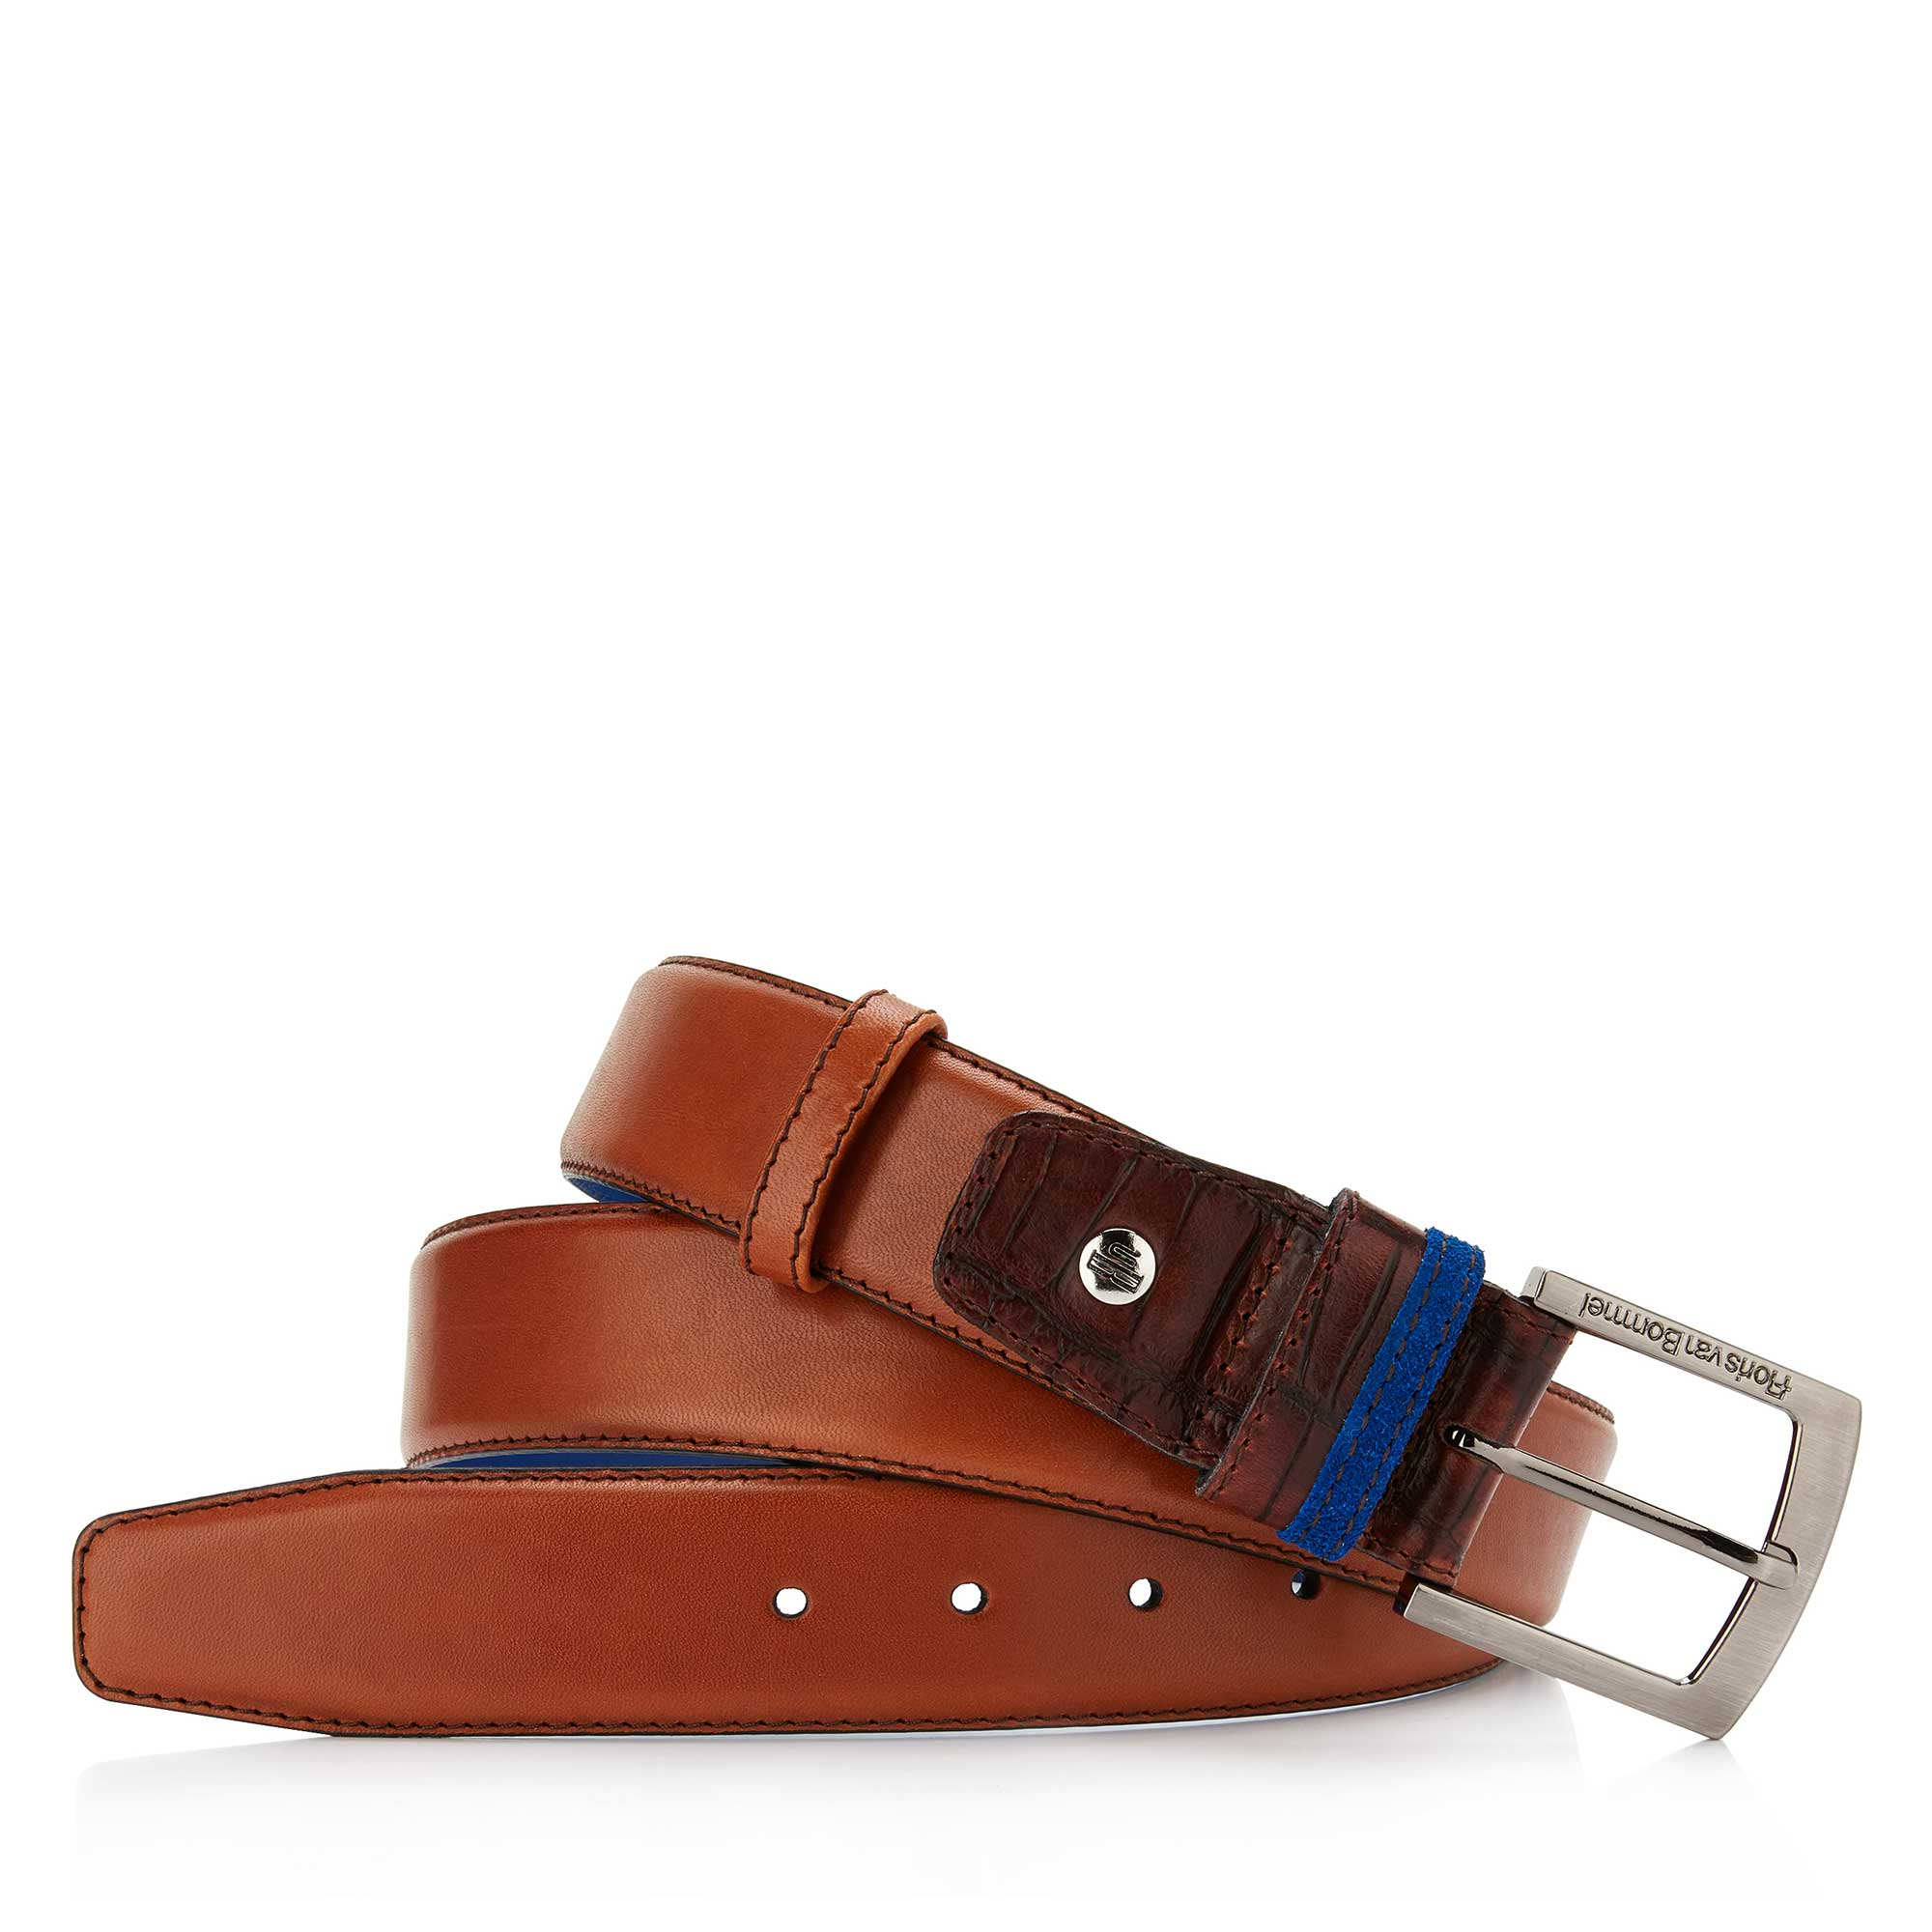 75004/01 - Cognac leather belt